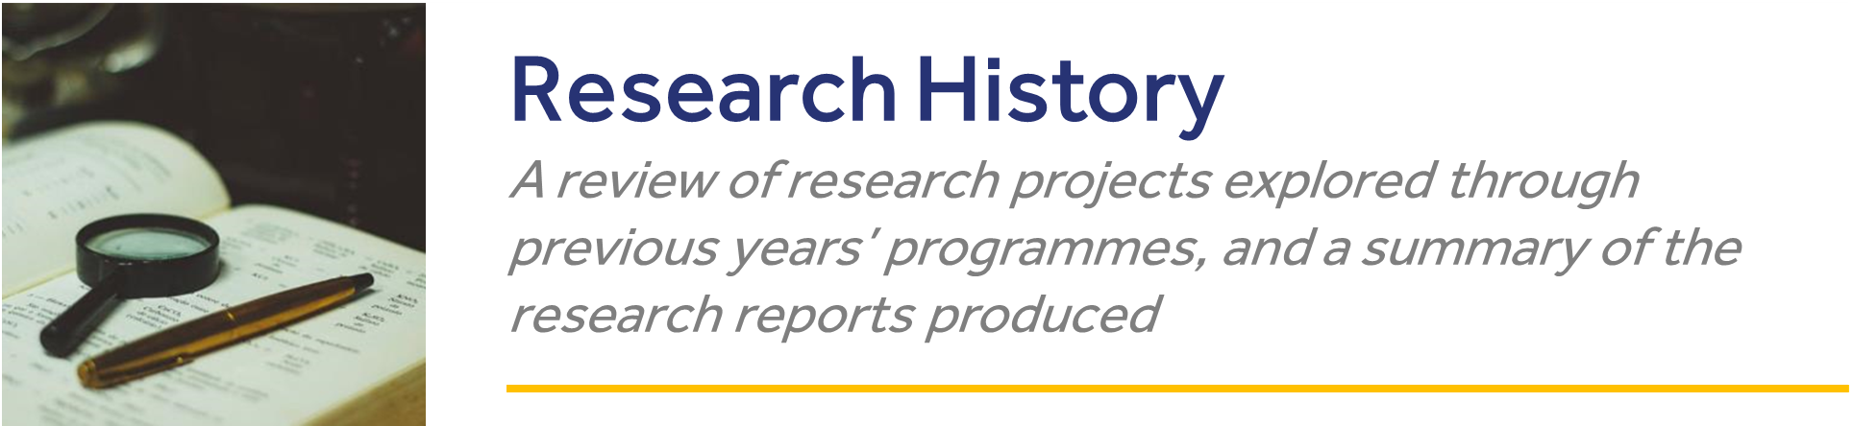 HCCM Research History